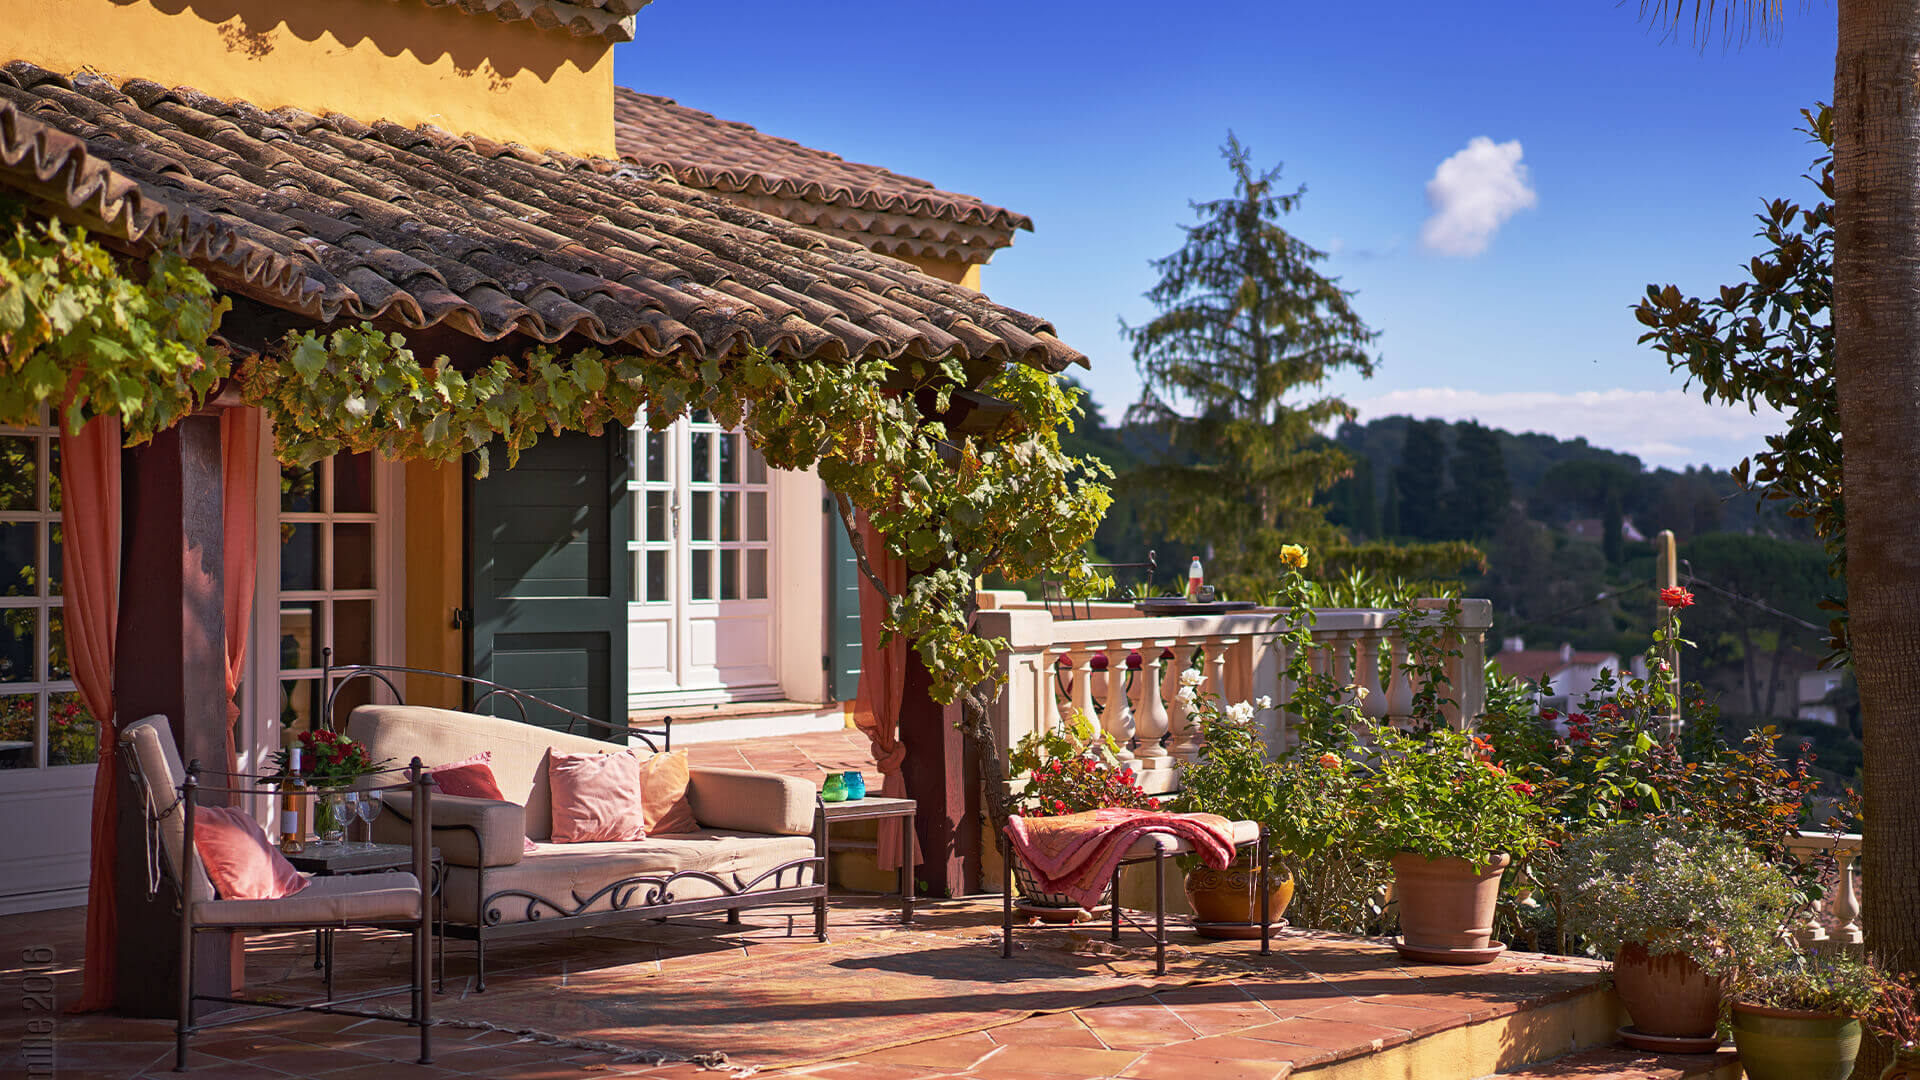 Villa Savoy patio with view